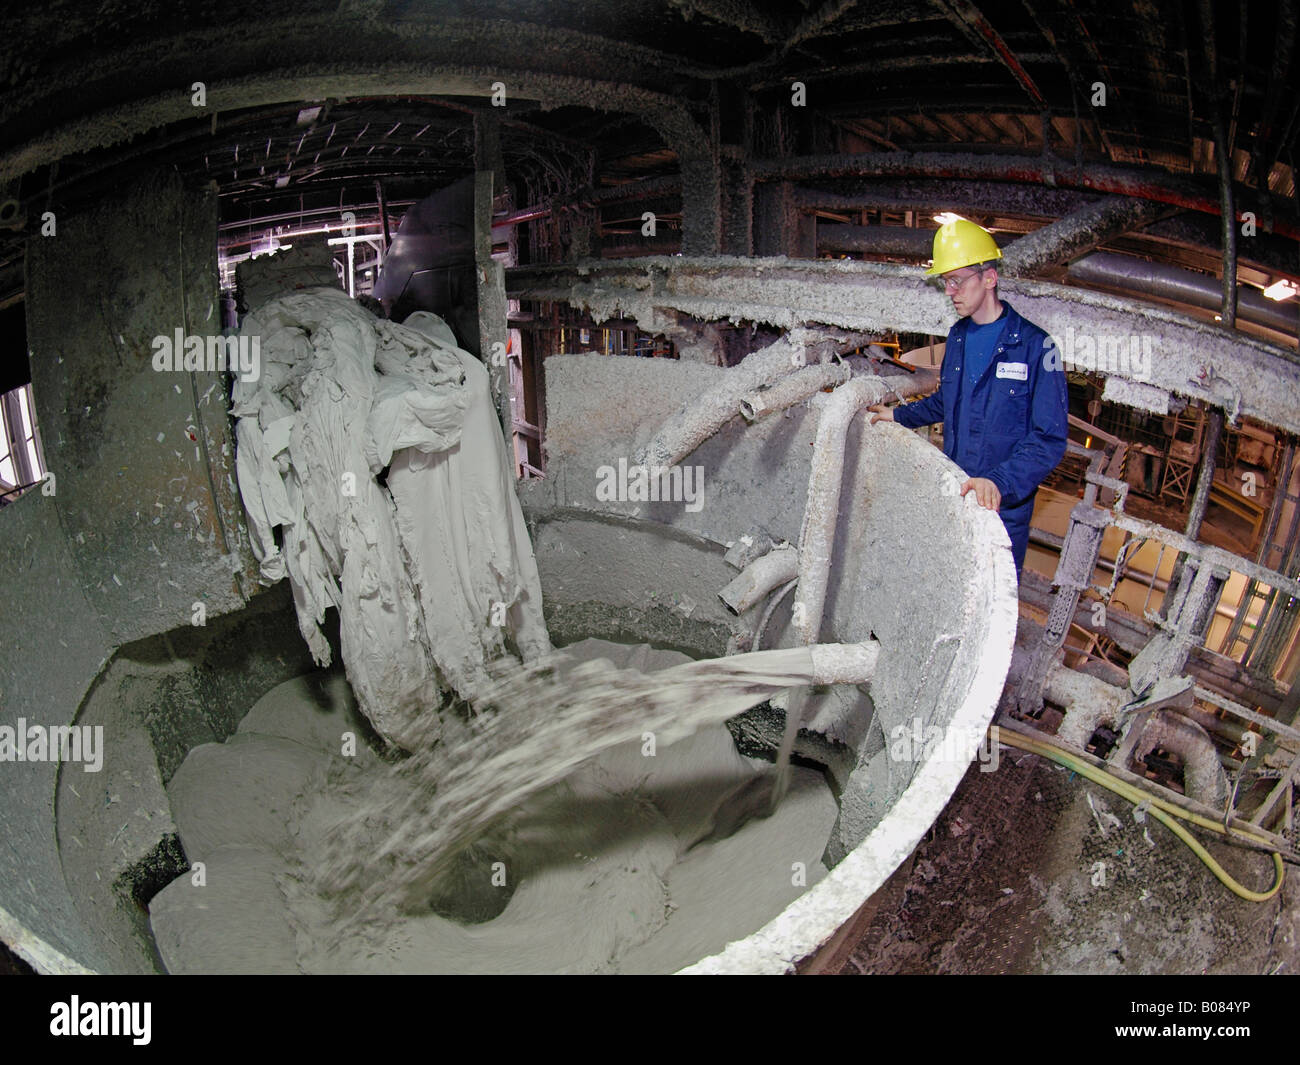 Man Standing Next To Large Machine Where Old Waste Paper